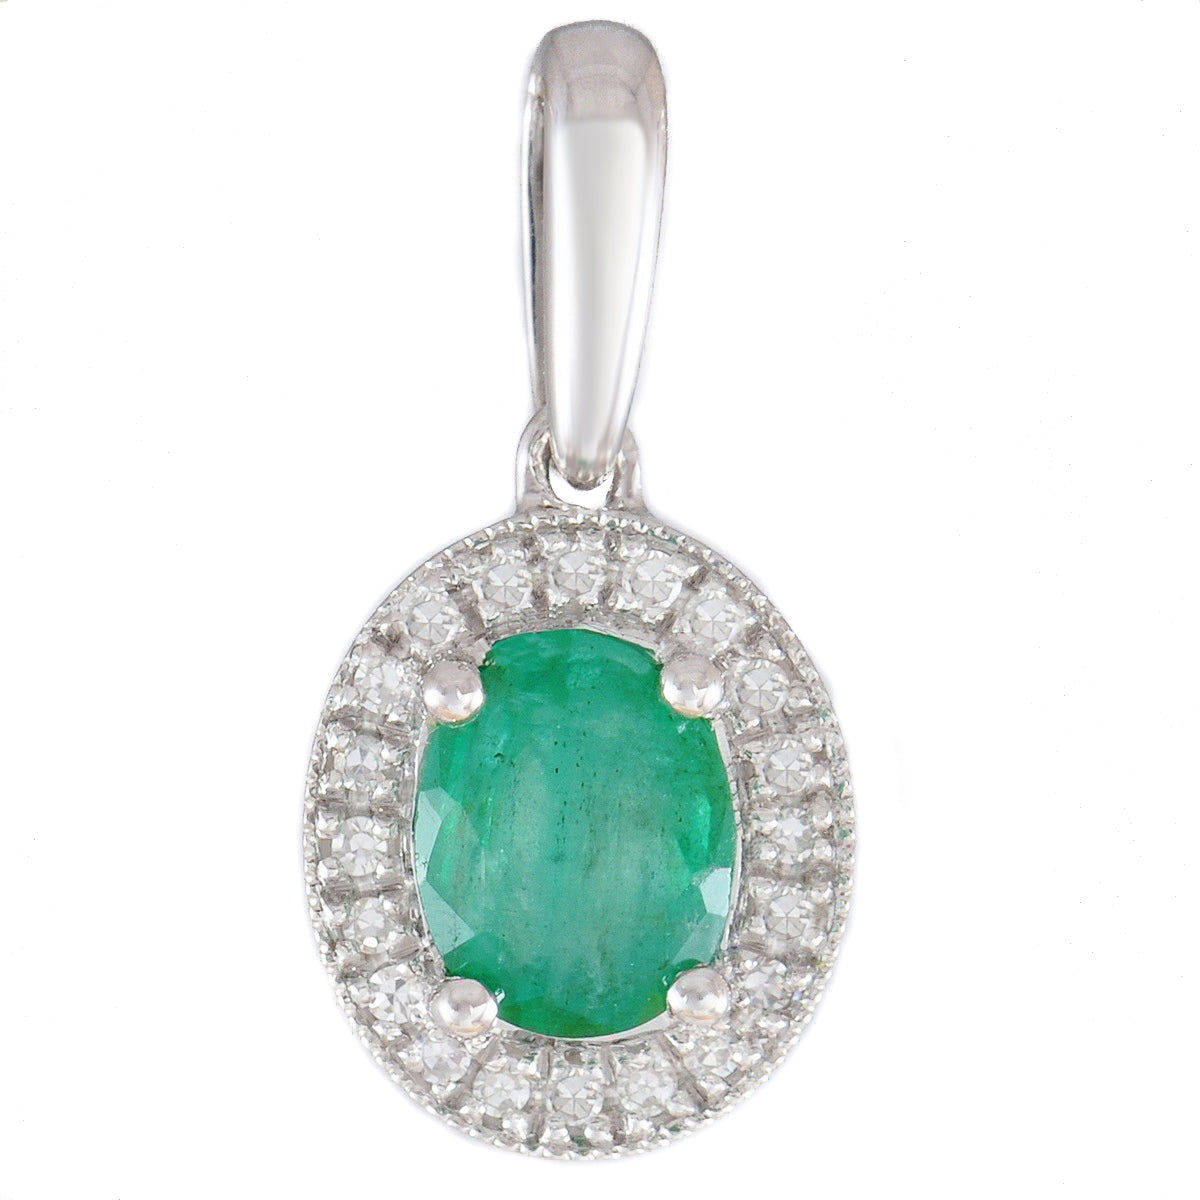 emerald jewelry for necklace from group china gift pendant store women shop gold and cheap wfie natural mom